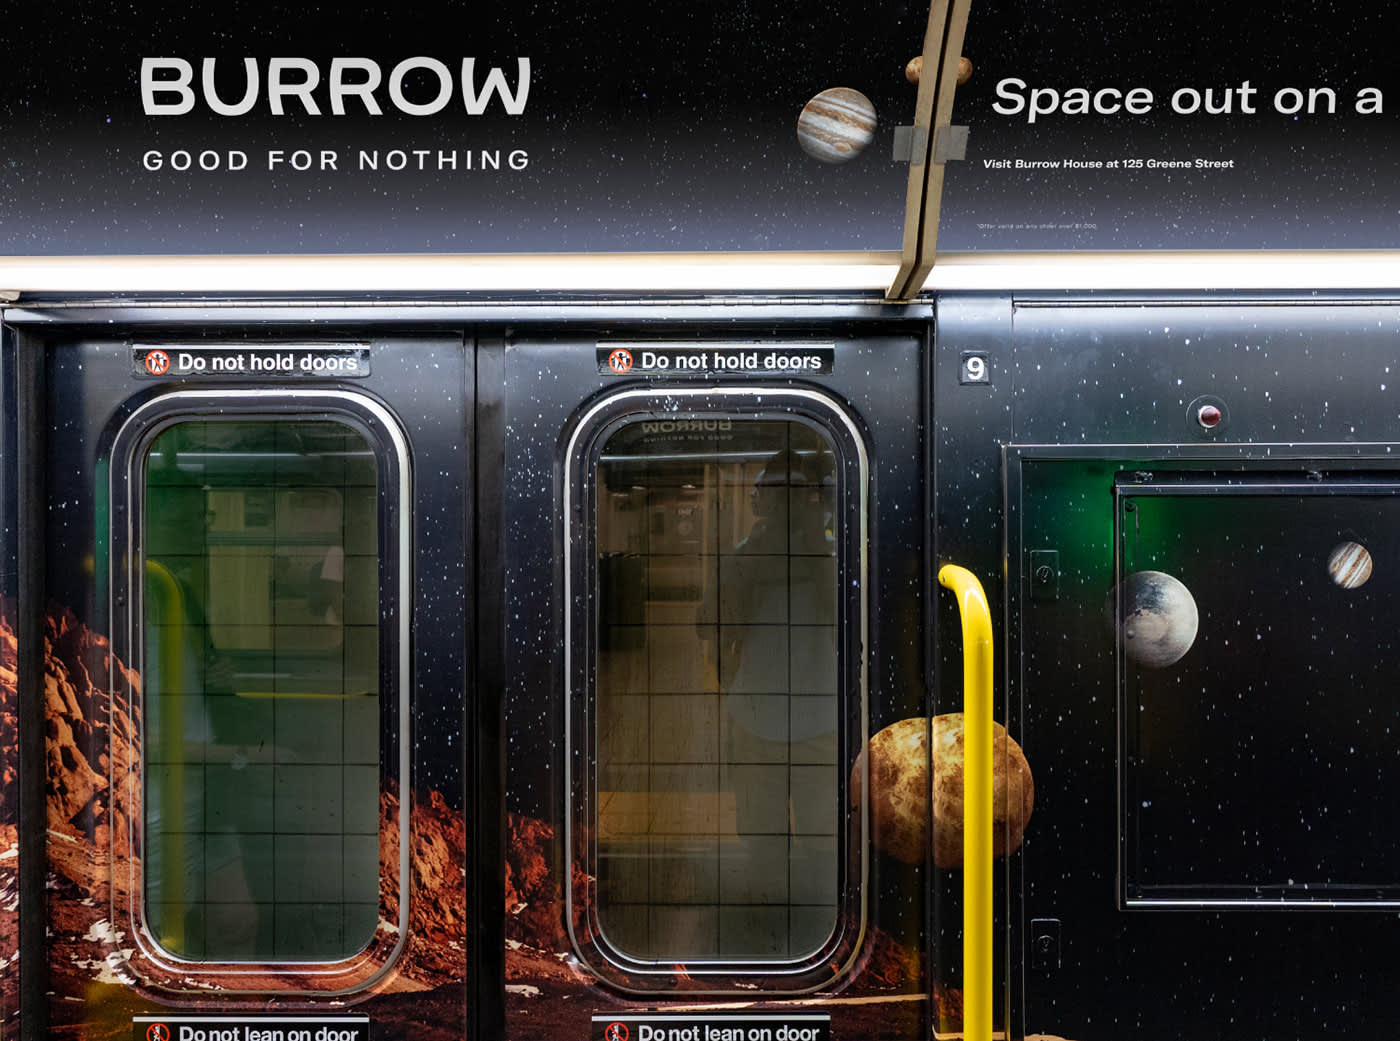 Burrow / Good For Nothing